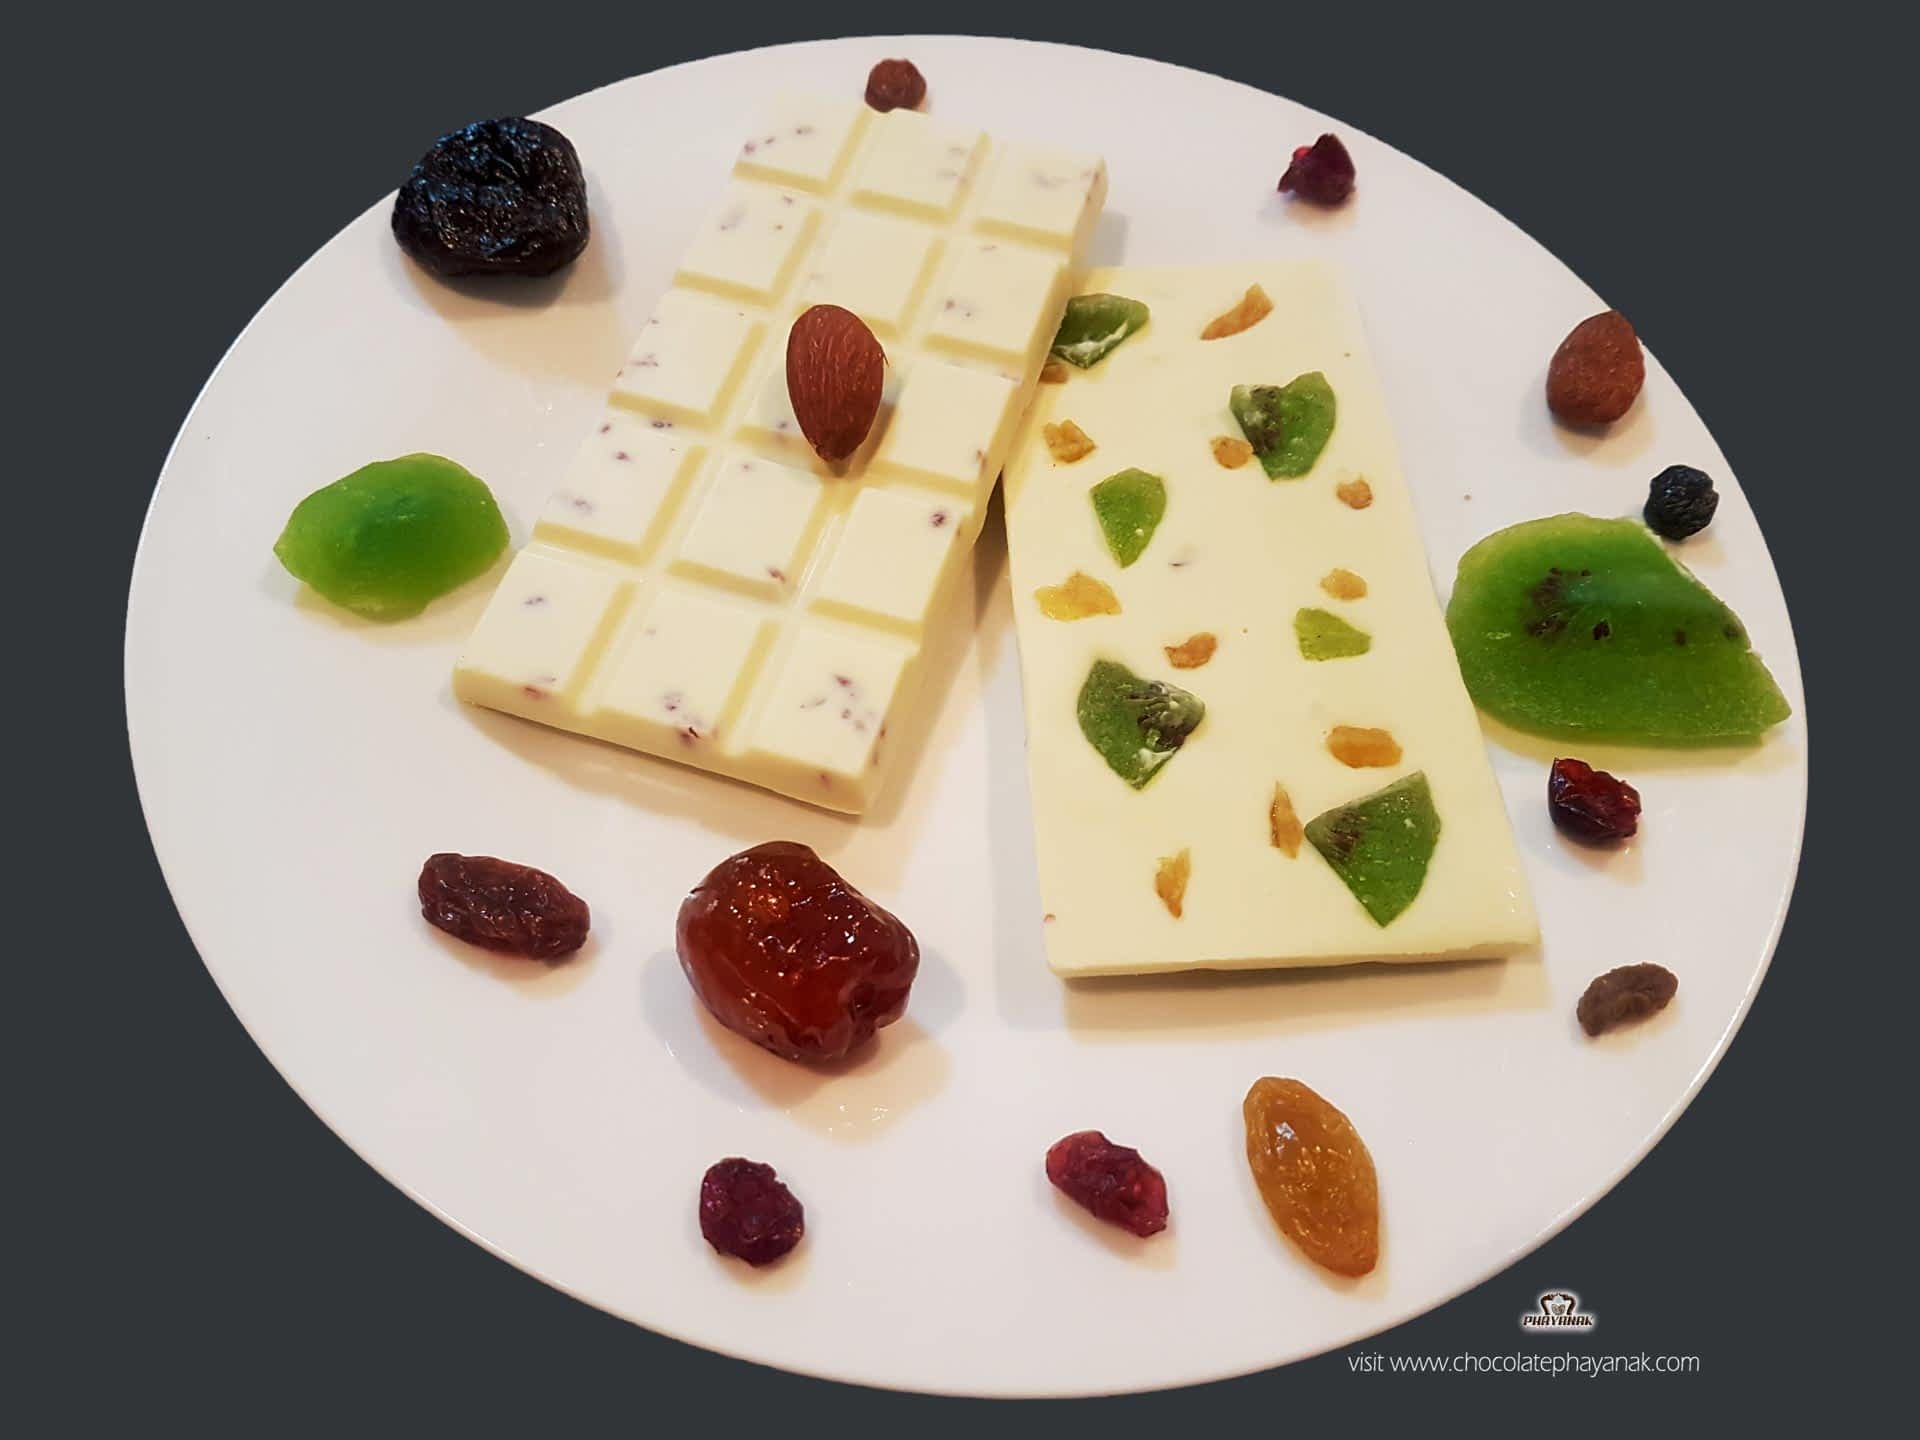 White chocolate bars with vibrant tropical fruits